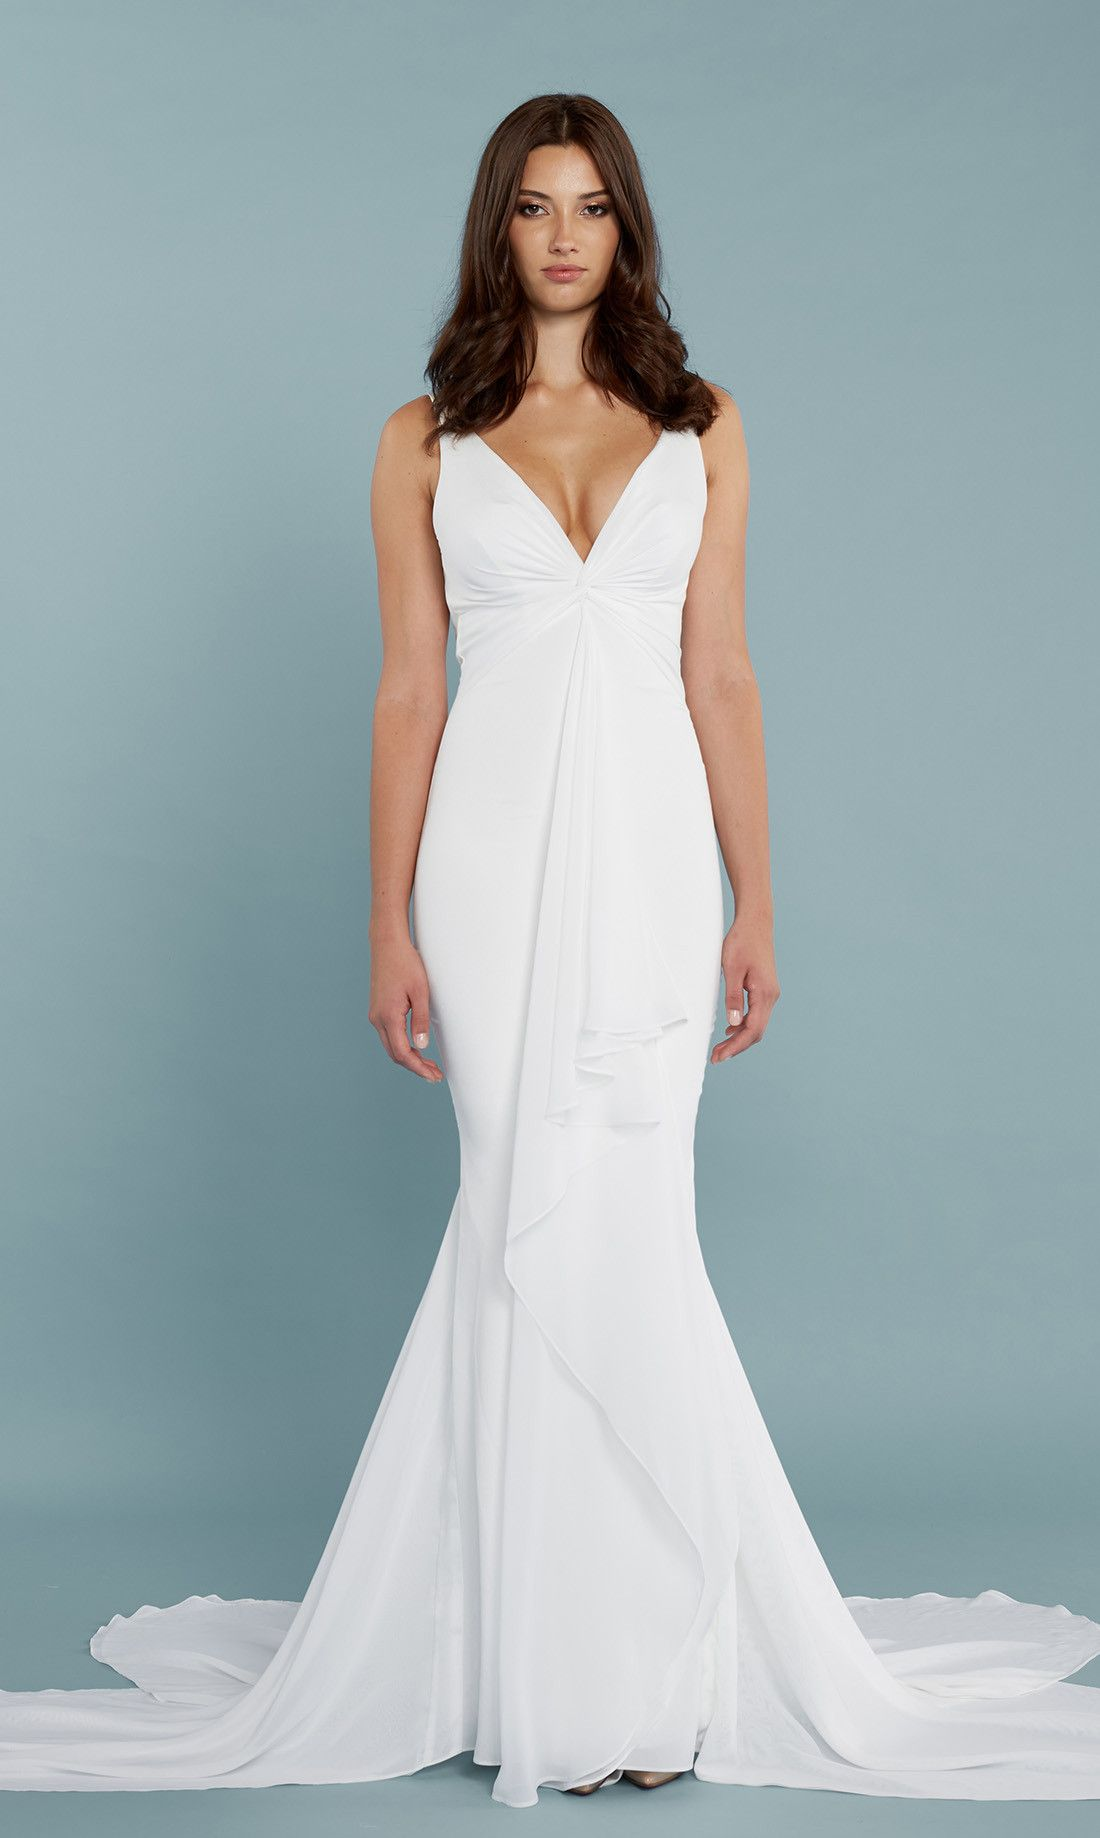 Mykonos Gown Mermaid gown, Wedding gowns lace, Gowns dresses